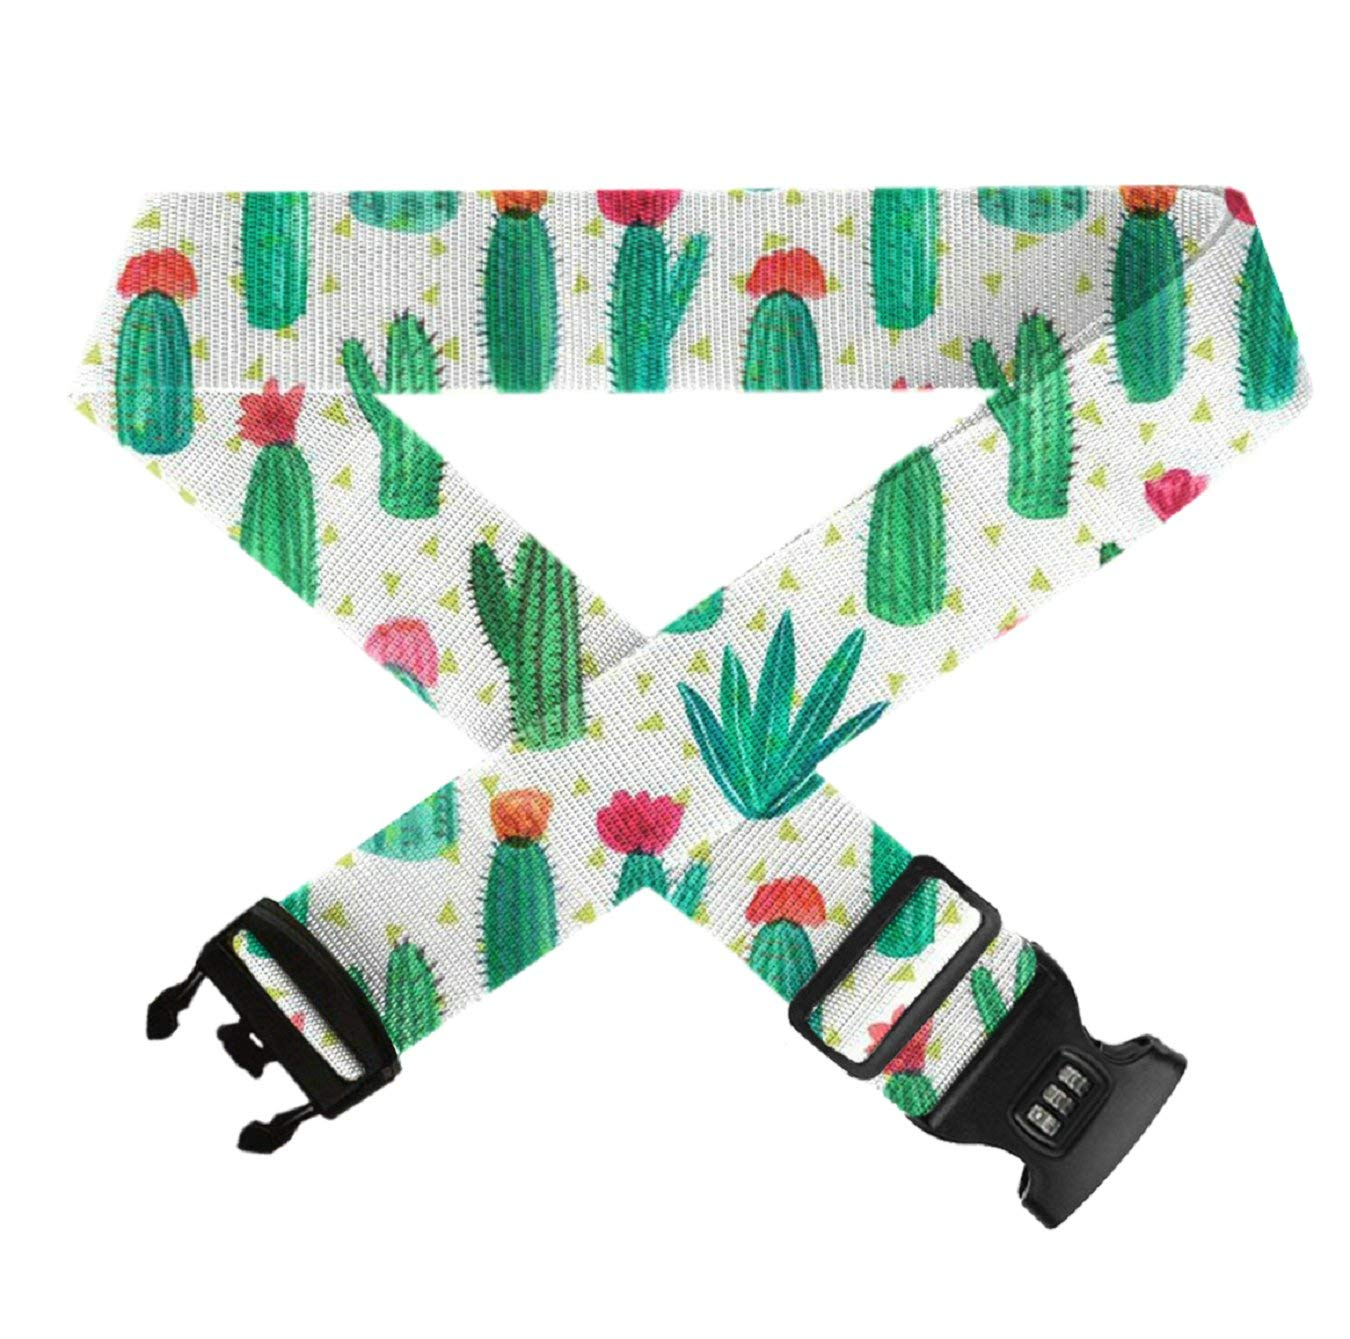 TSA Approved Lock Heavy Duty Suitcase Straps Travel Belts Accessories 1-Pc GLORY ART Adjustable Luggage Strap Desert Cactus Flower